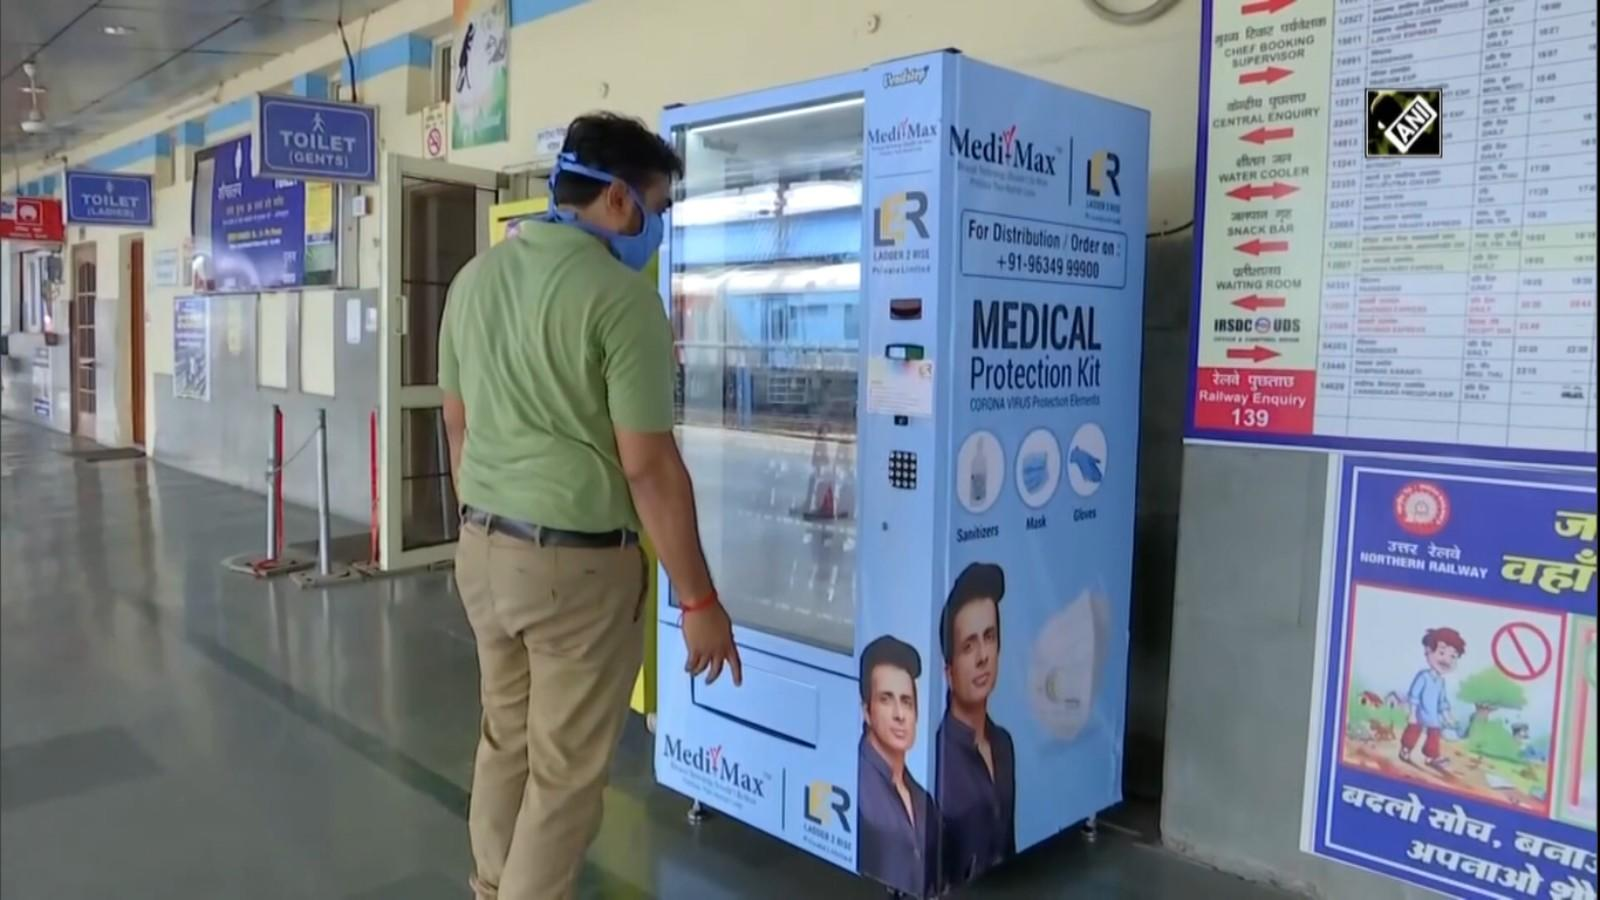 Covid 19 Automatic Vending Machine For Masks Sanitizers Installed At Chandigarh Railway Station City Times Of India Videos